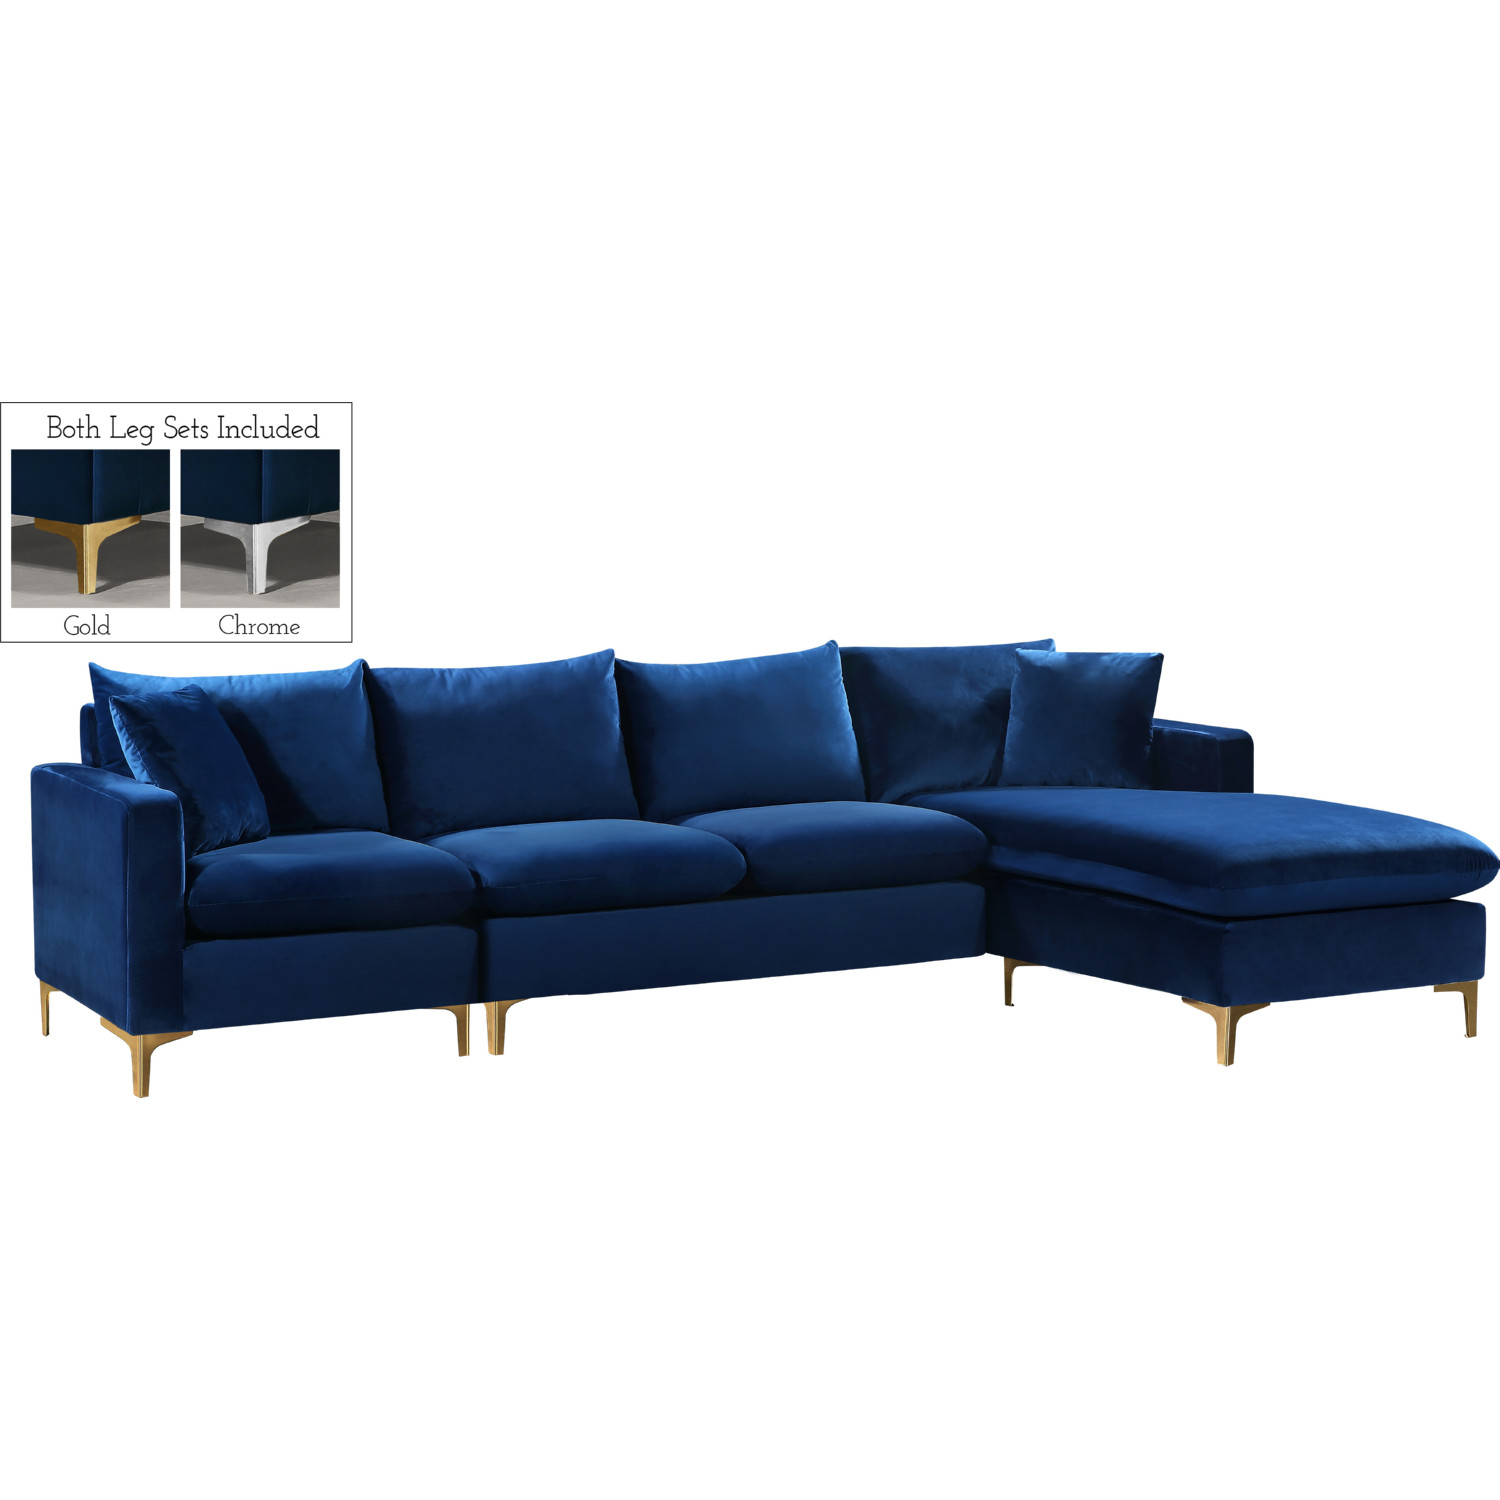 Miraculous Naomi Sectional Sofa W Reversible Chaise In Navy Velvet By Meridian Furniture Andrewgaddart Wooden Chair Designs For Living Room Andrewgaddartcom